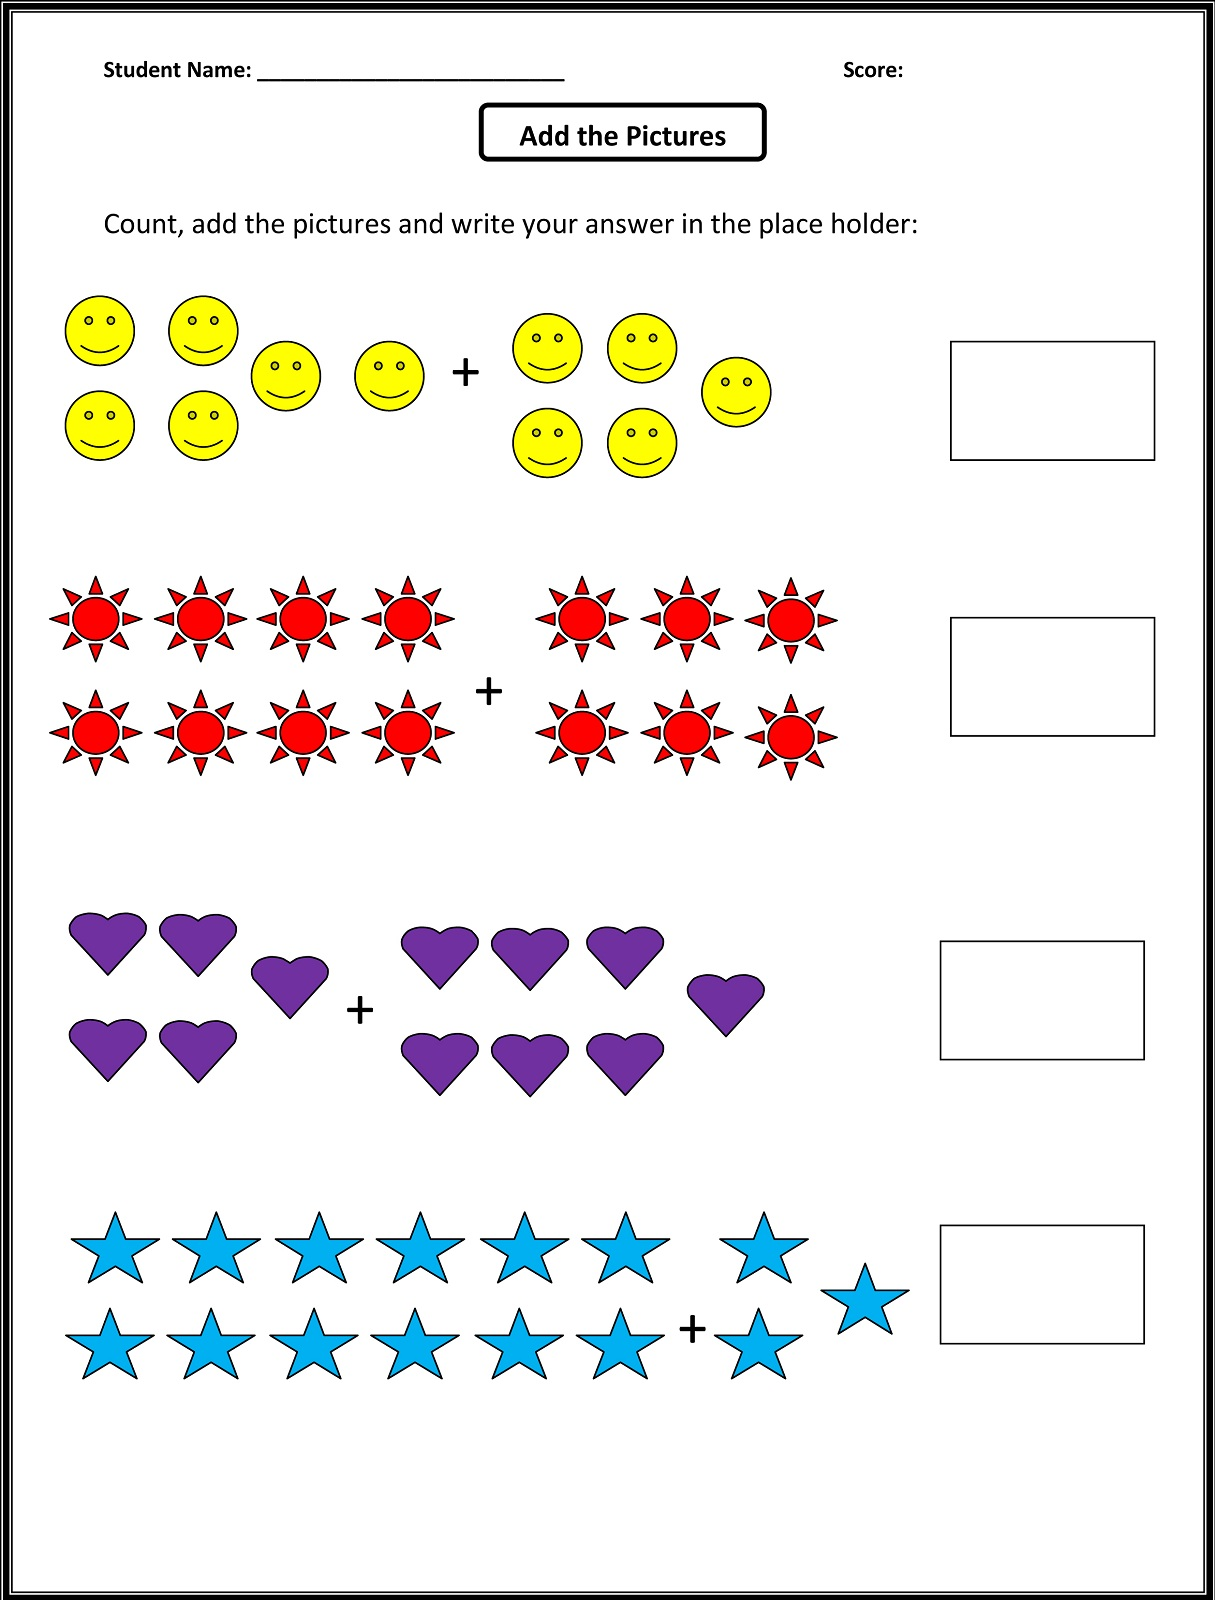 worksheet Addition Worksheets For 1st Grade worksheets for 1st grade math activity shelter image via mathworksheets4kids com